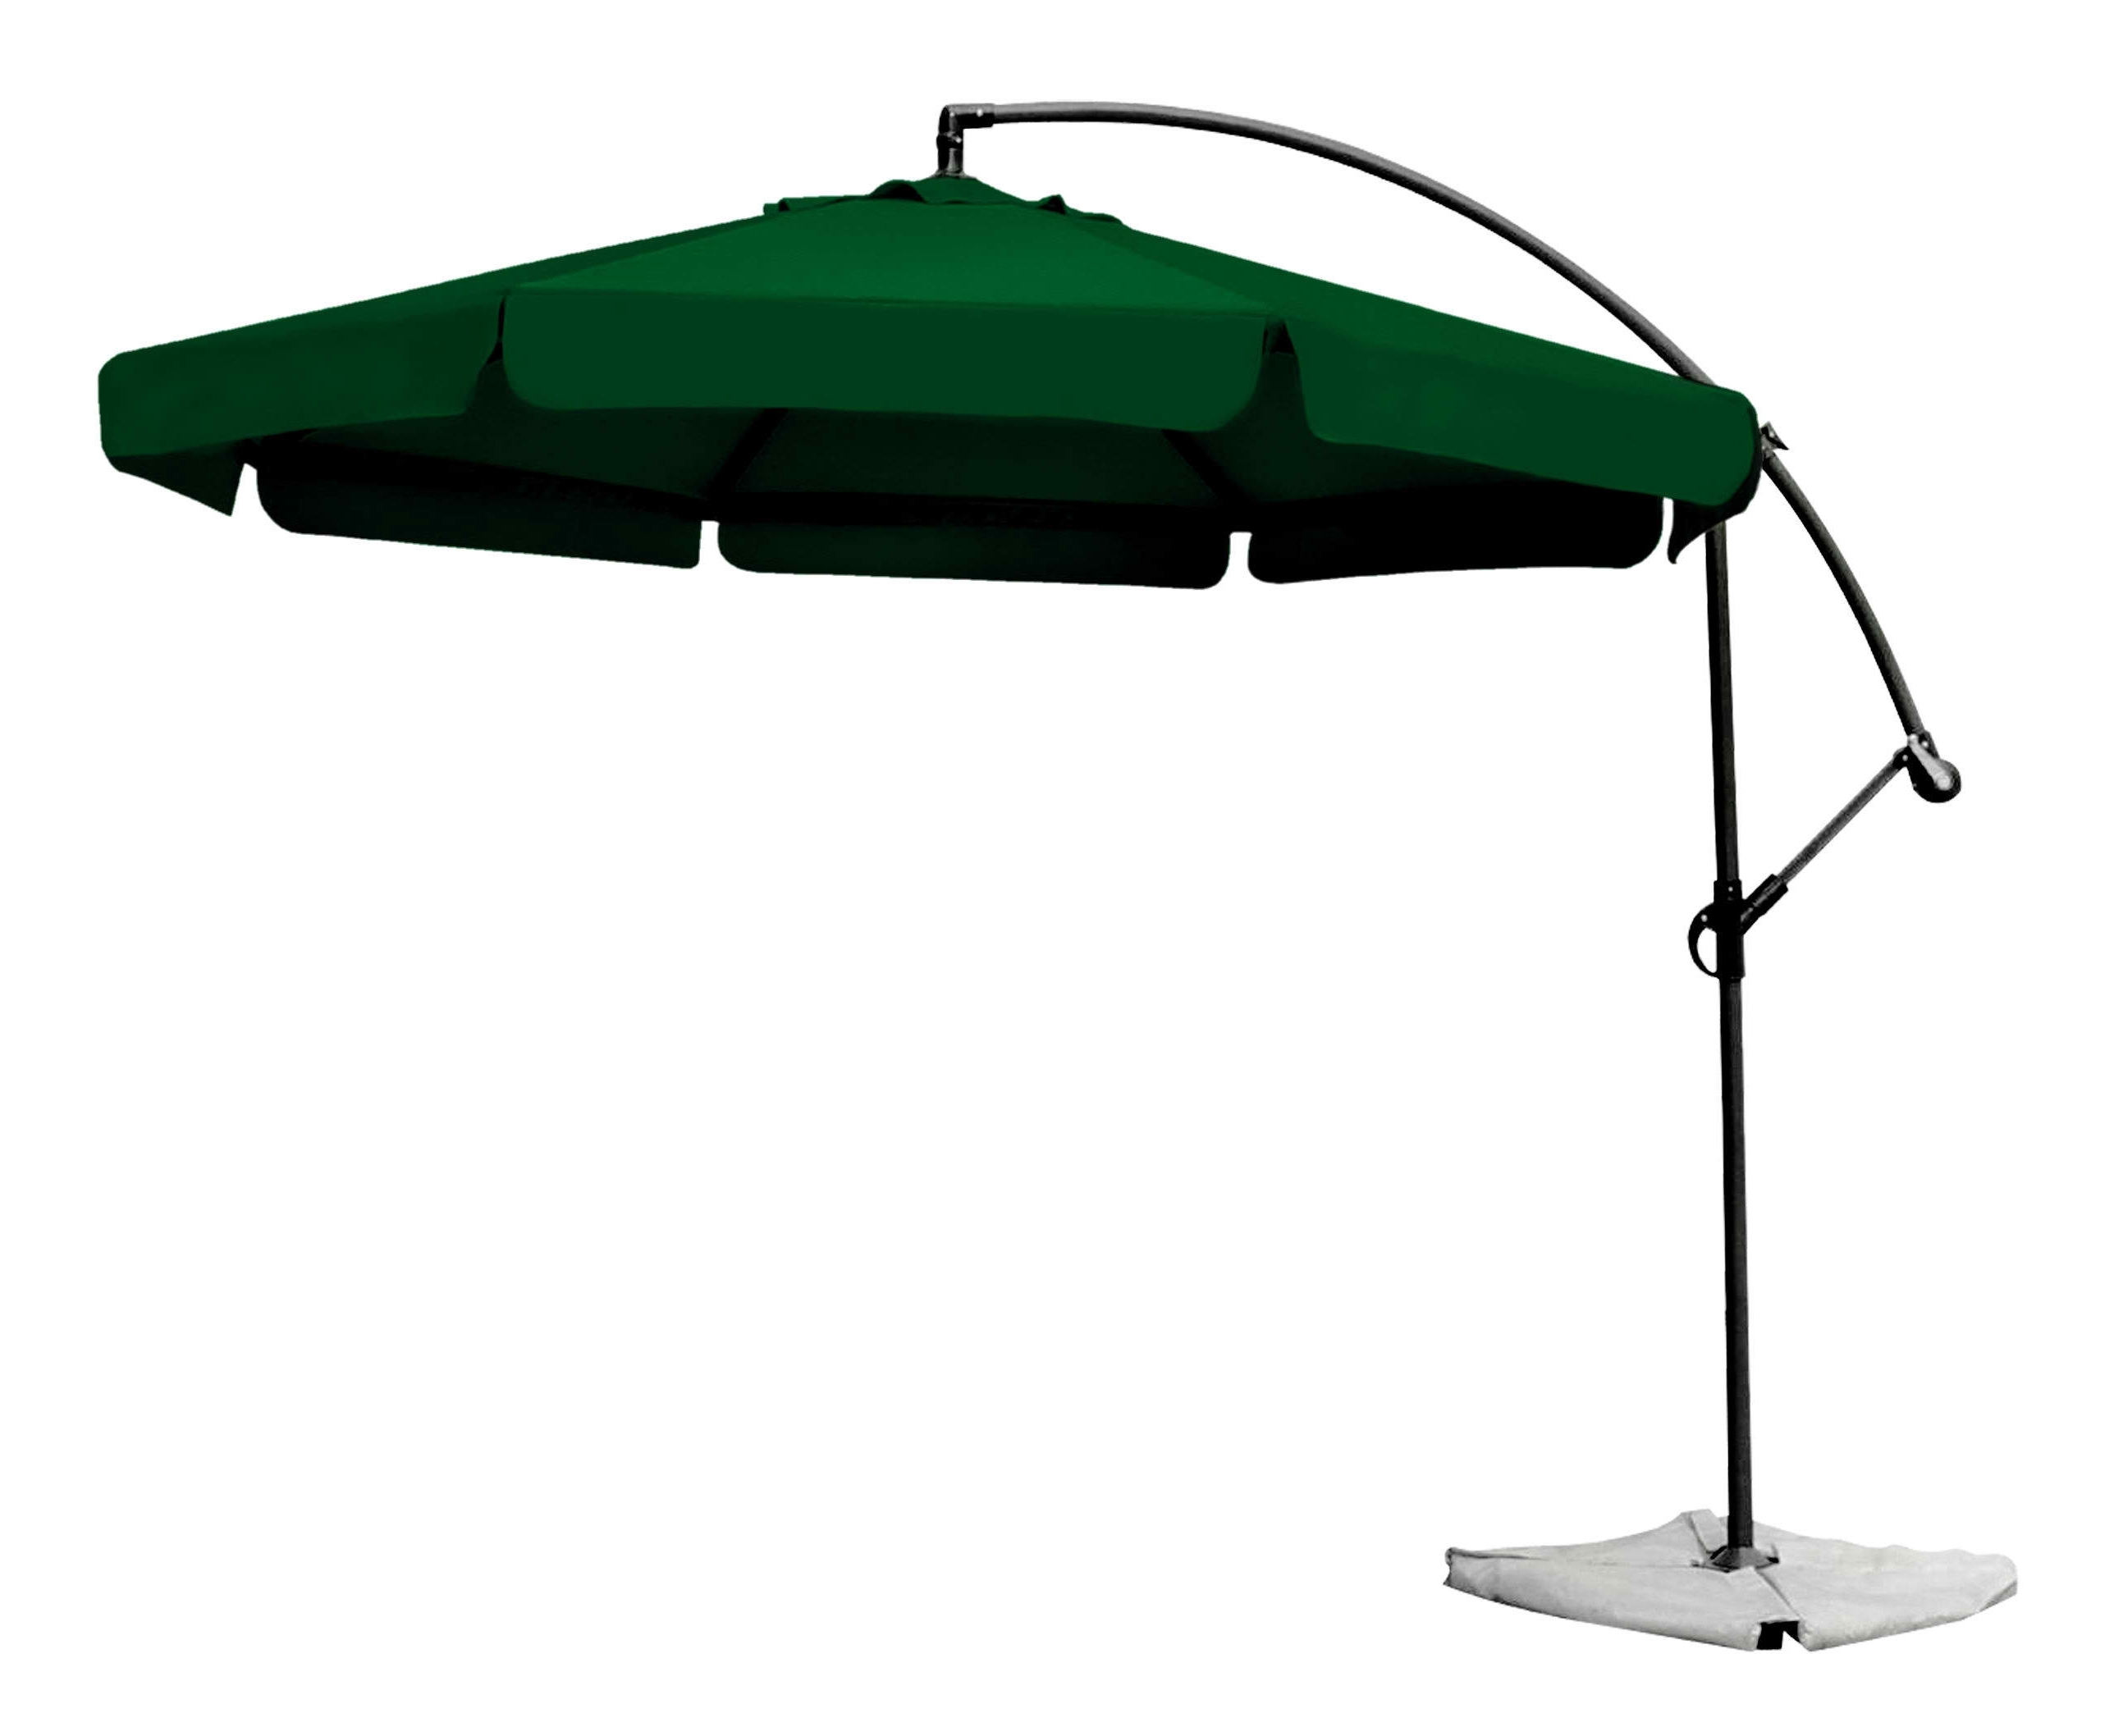 Exterior Design: Exciting Cantilever Patio Umbrella For Inspiring Pertaining To Well Known Green Patio Umbrellas (Gallery 10 of 20)